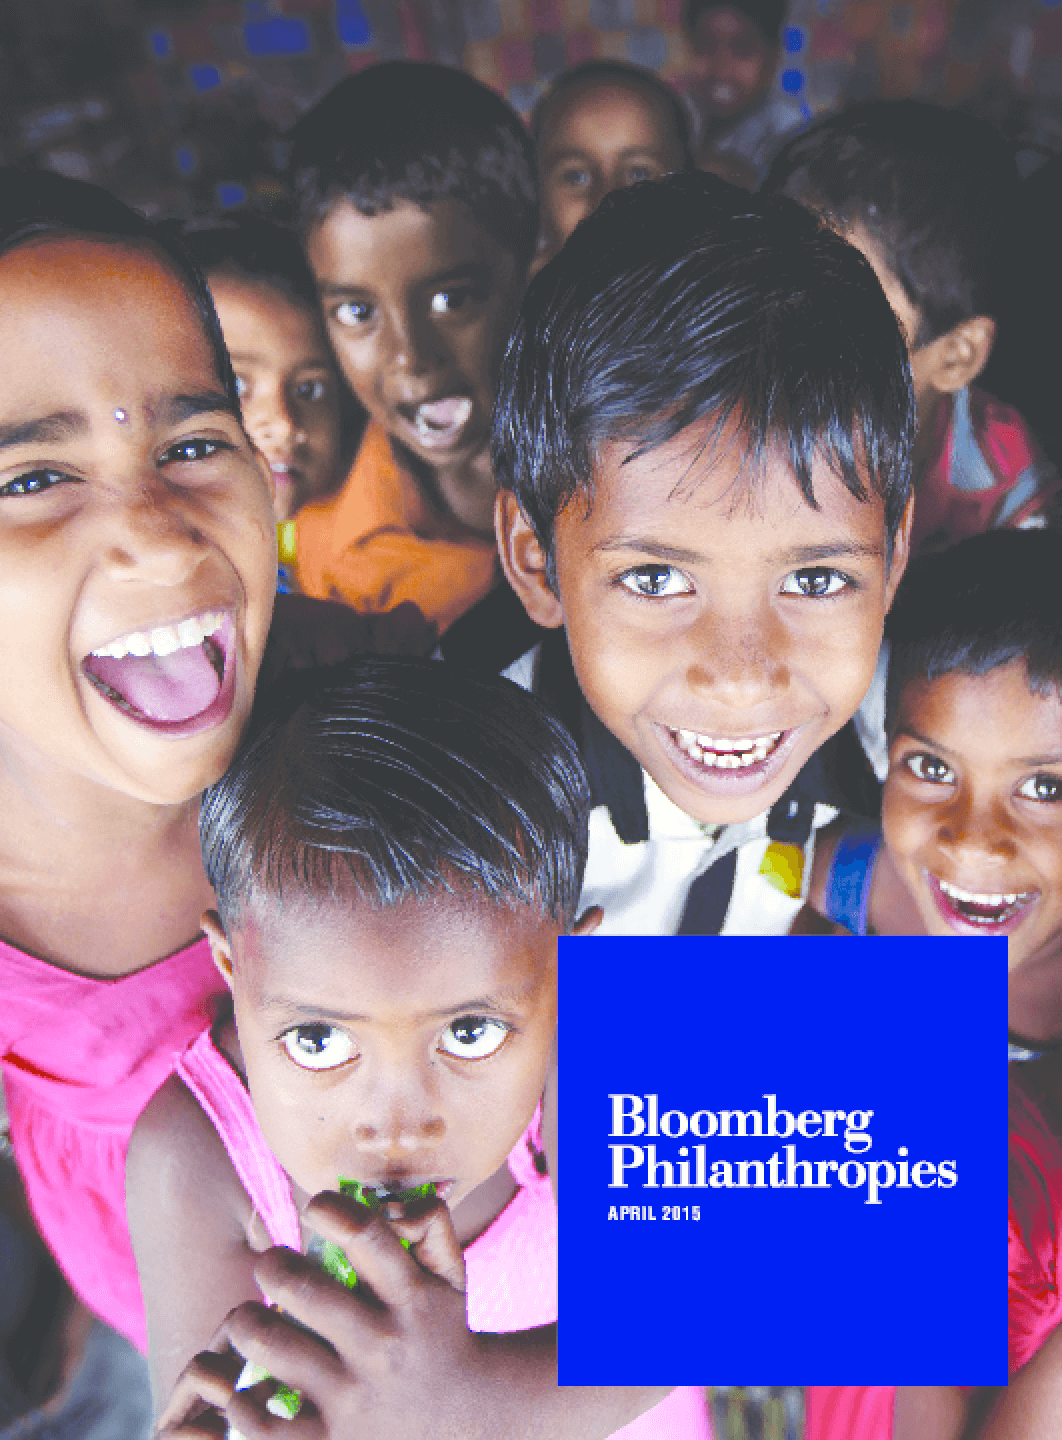 Bloomberg Philanthropies: Annual Report